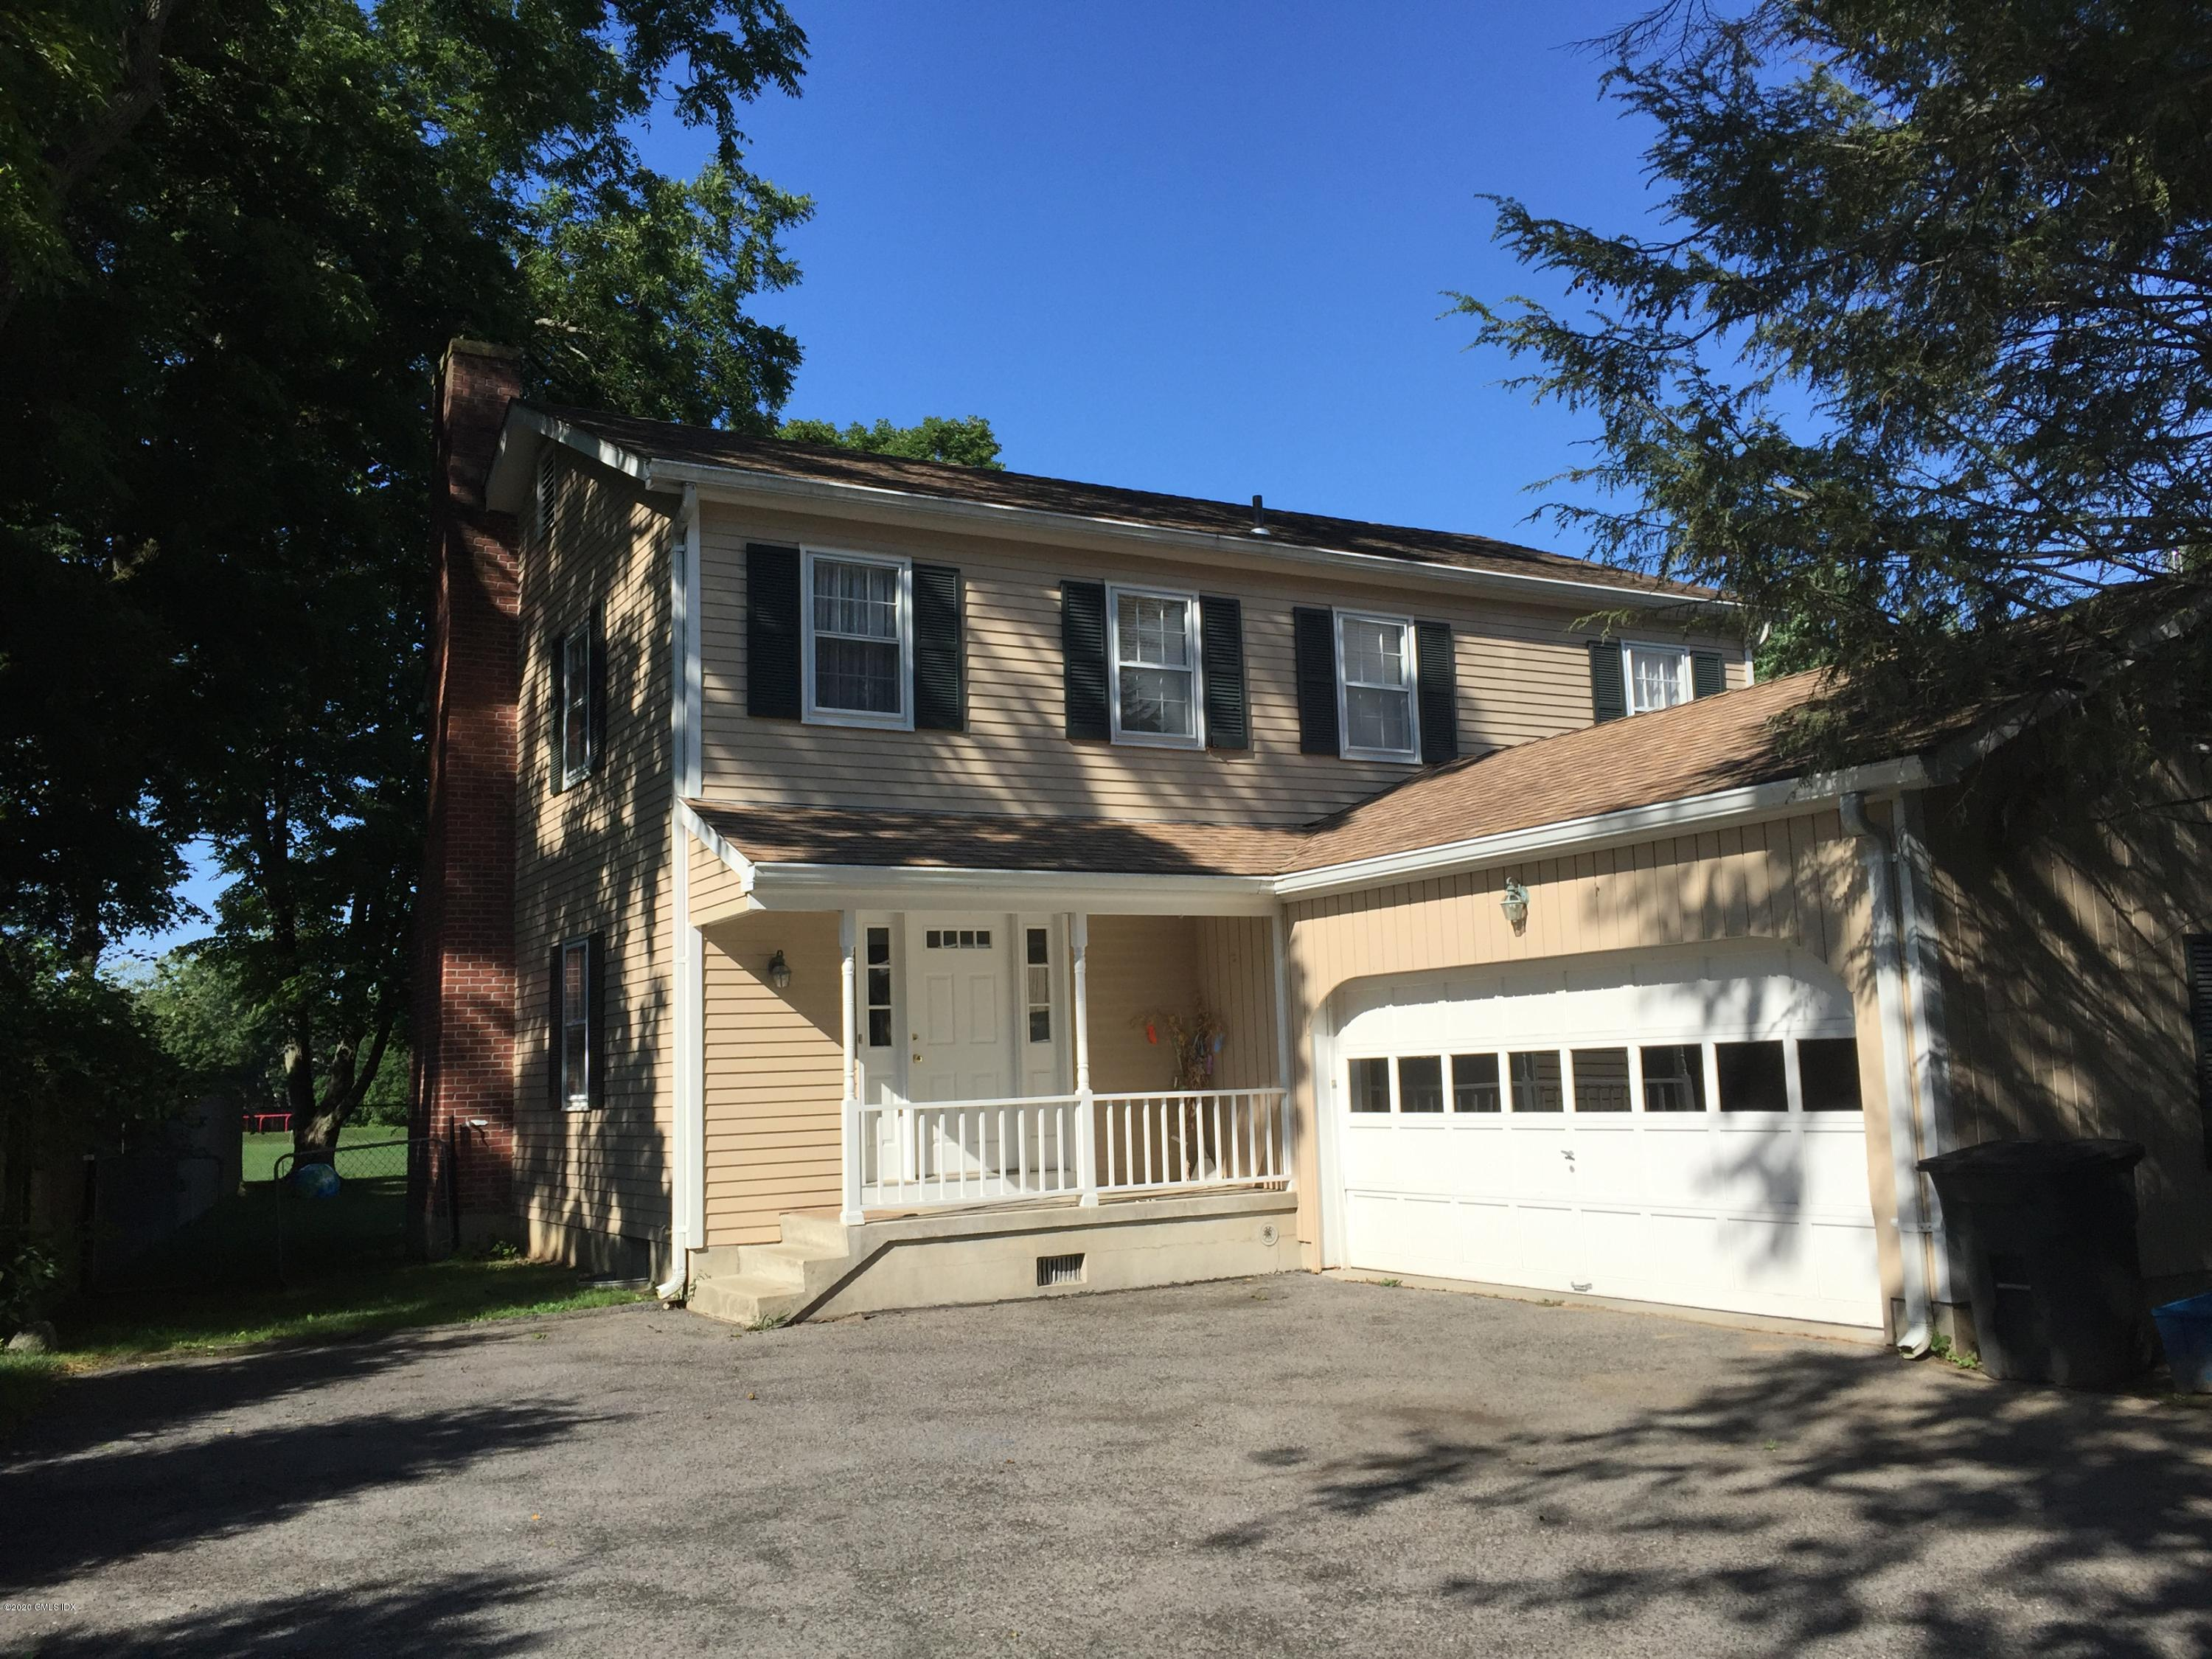 38A Orchard Street, Cos Cob, Connecticut 06807, 4 Bedrooms Bedrooms, ,2 BathroomsBathrooms,Single family,For Rent,Orchard,111206